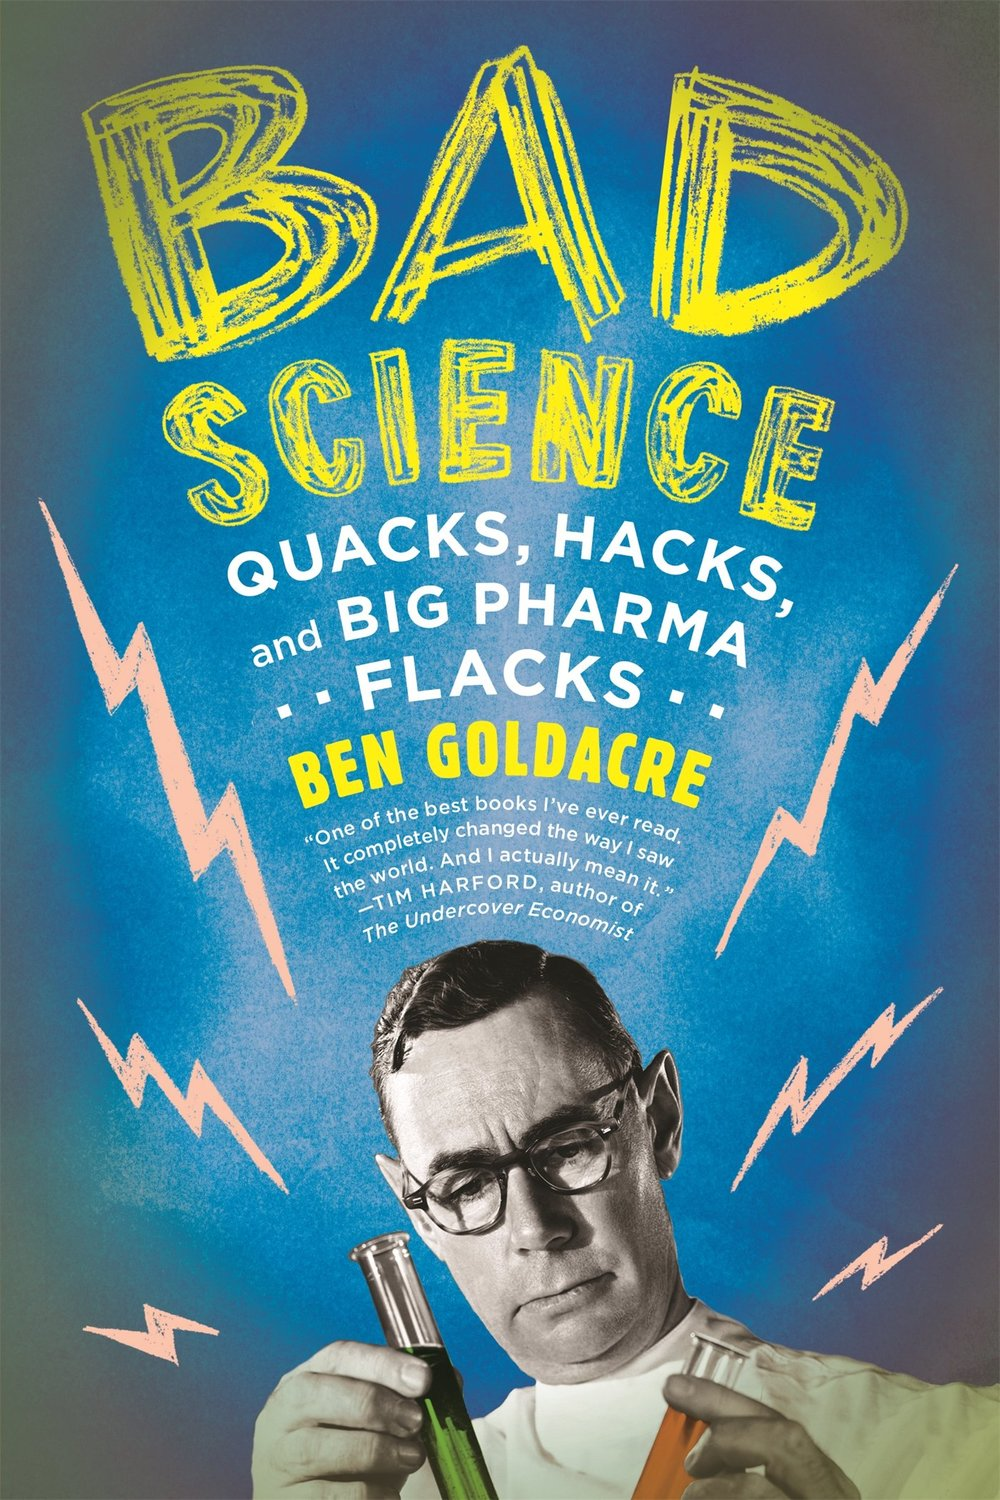 Bad science - In today's society, there is no denying that the media has taken over. You go on instagram and everybody is promoting 'Flat Tummy Tea' or some kind of bogus health hack. Recommended by another PhD student, this book investigates 'bogus science' and 'quack doctors' who often give recommendations for products and 'medicines' that have no scientific evidence to support that they are effective.